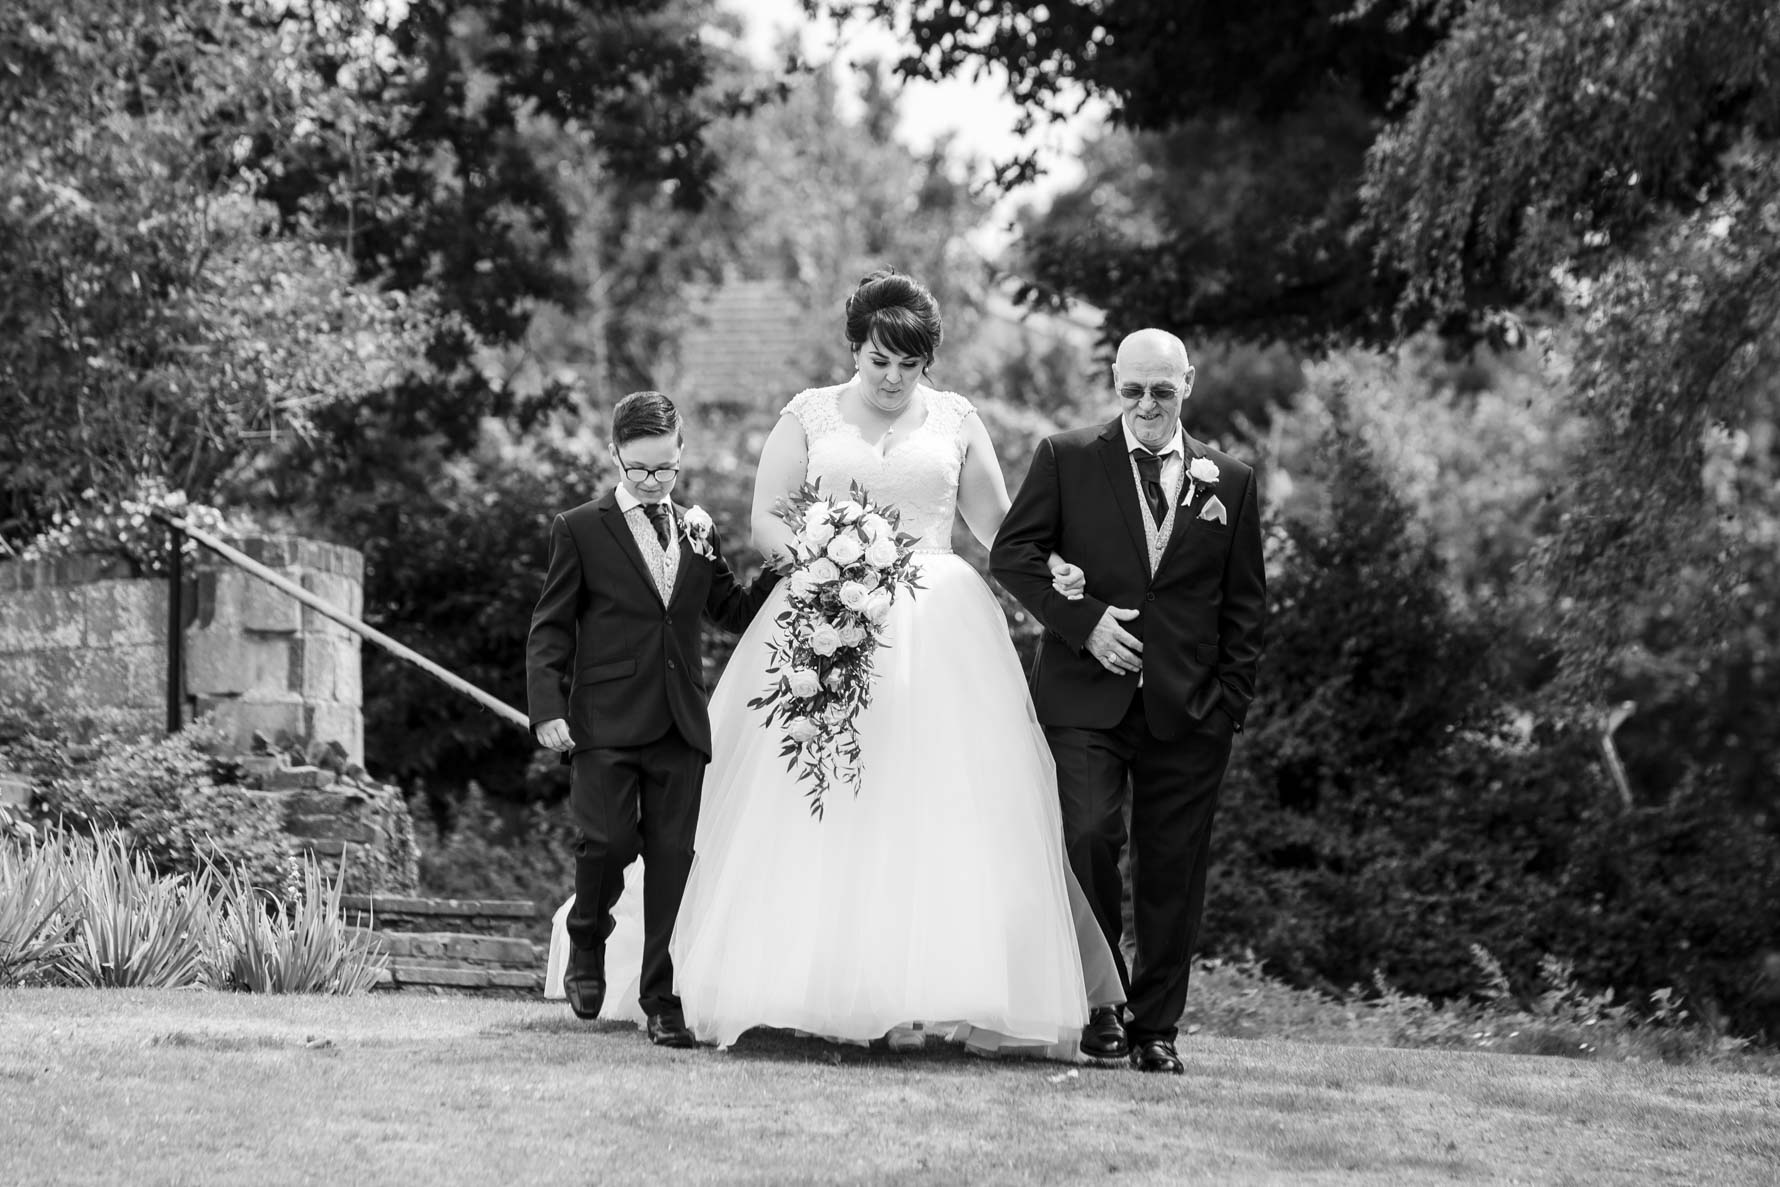 A bride walks to her wedding ceremony with her son and her father either side